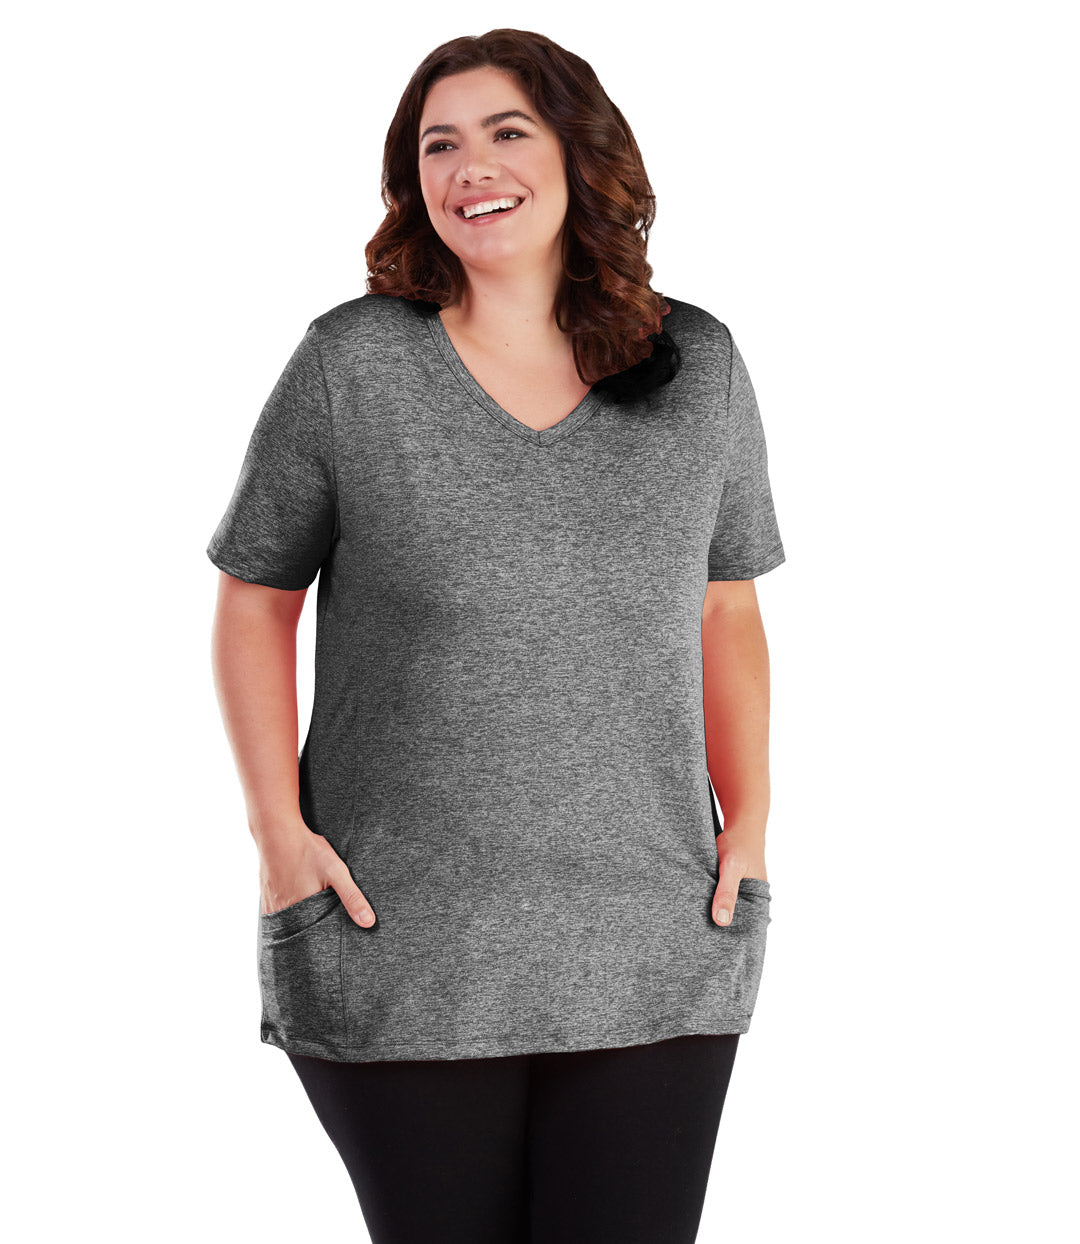 plus size top with pockets